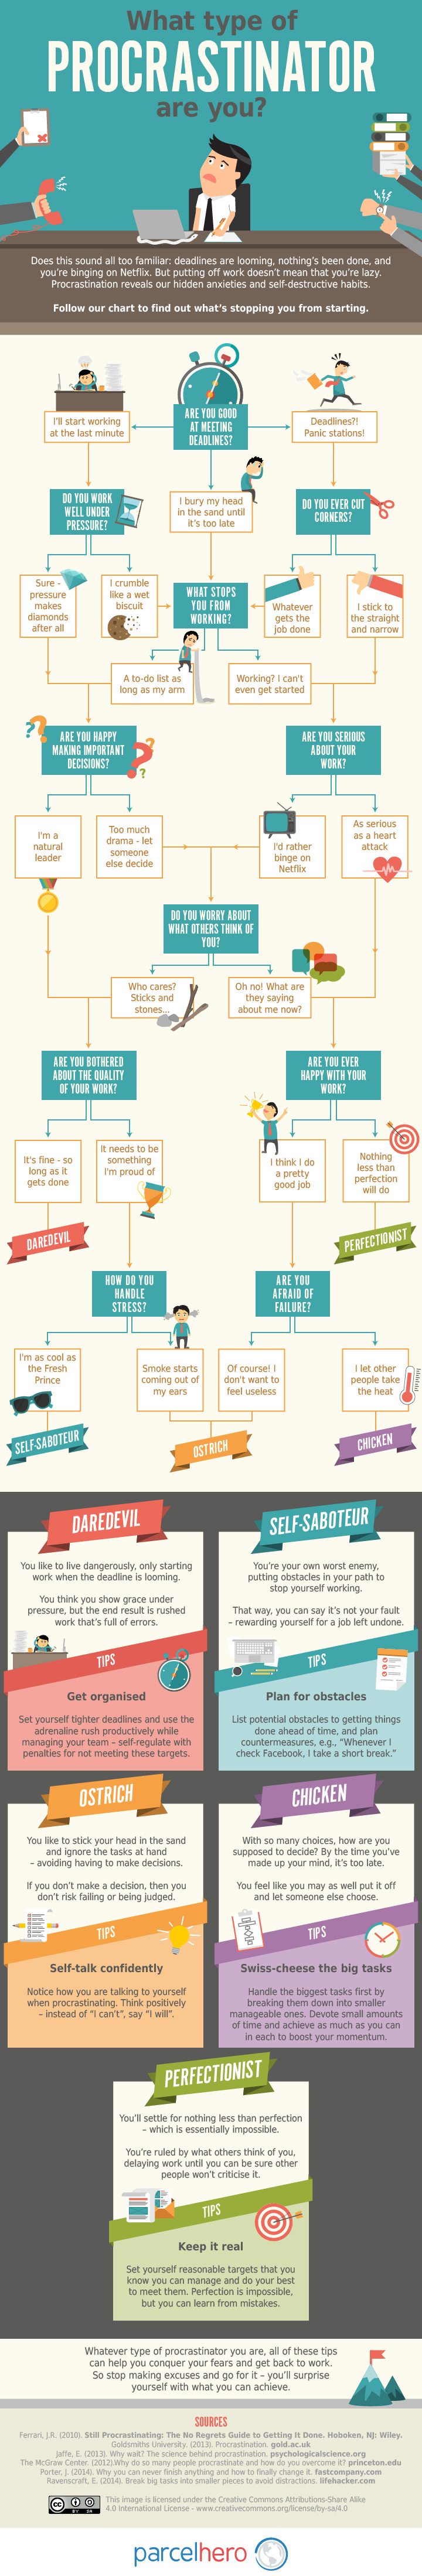 Find Out Which Type of Procrastinator You Are [Infographic]